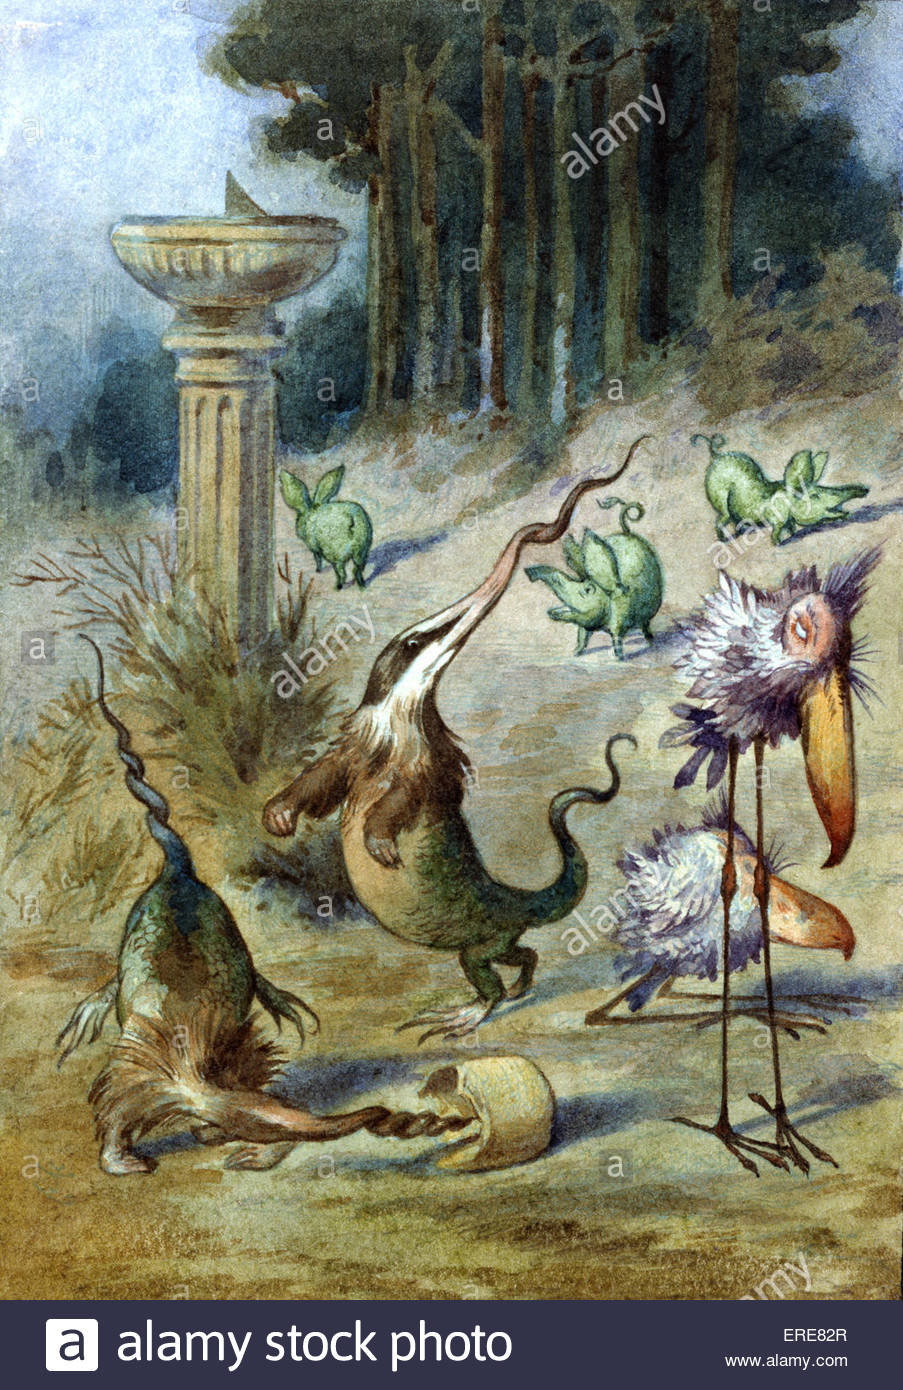 Garden With Sundial, from Alice in Wonderland  by Lewis Carroll (Charles Lutwidge Dodgson), English children's - Stock Image